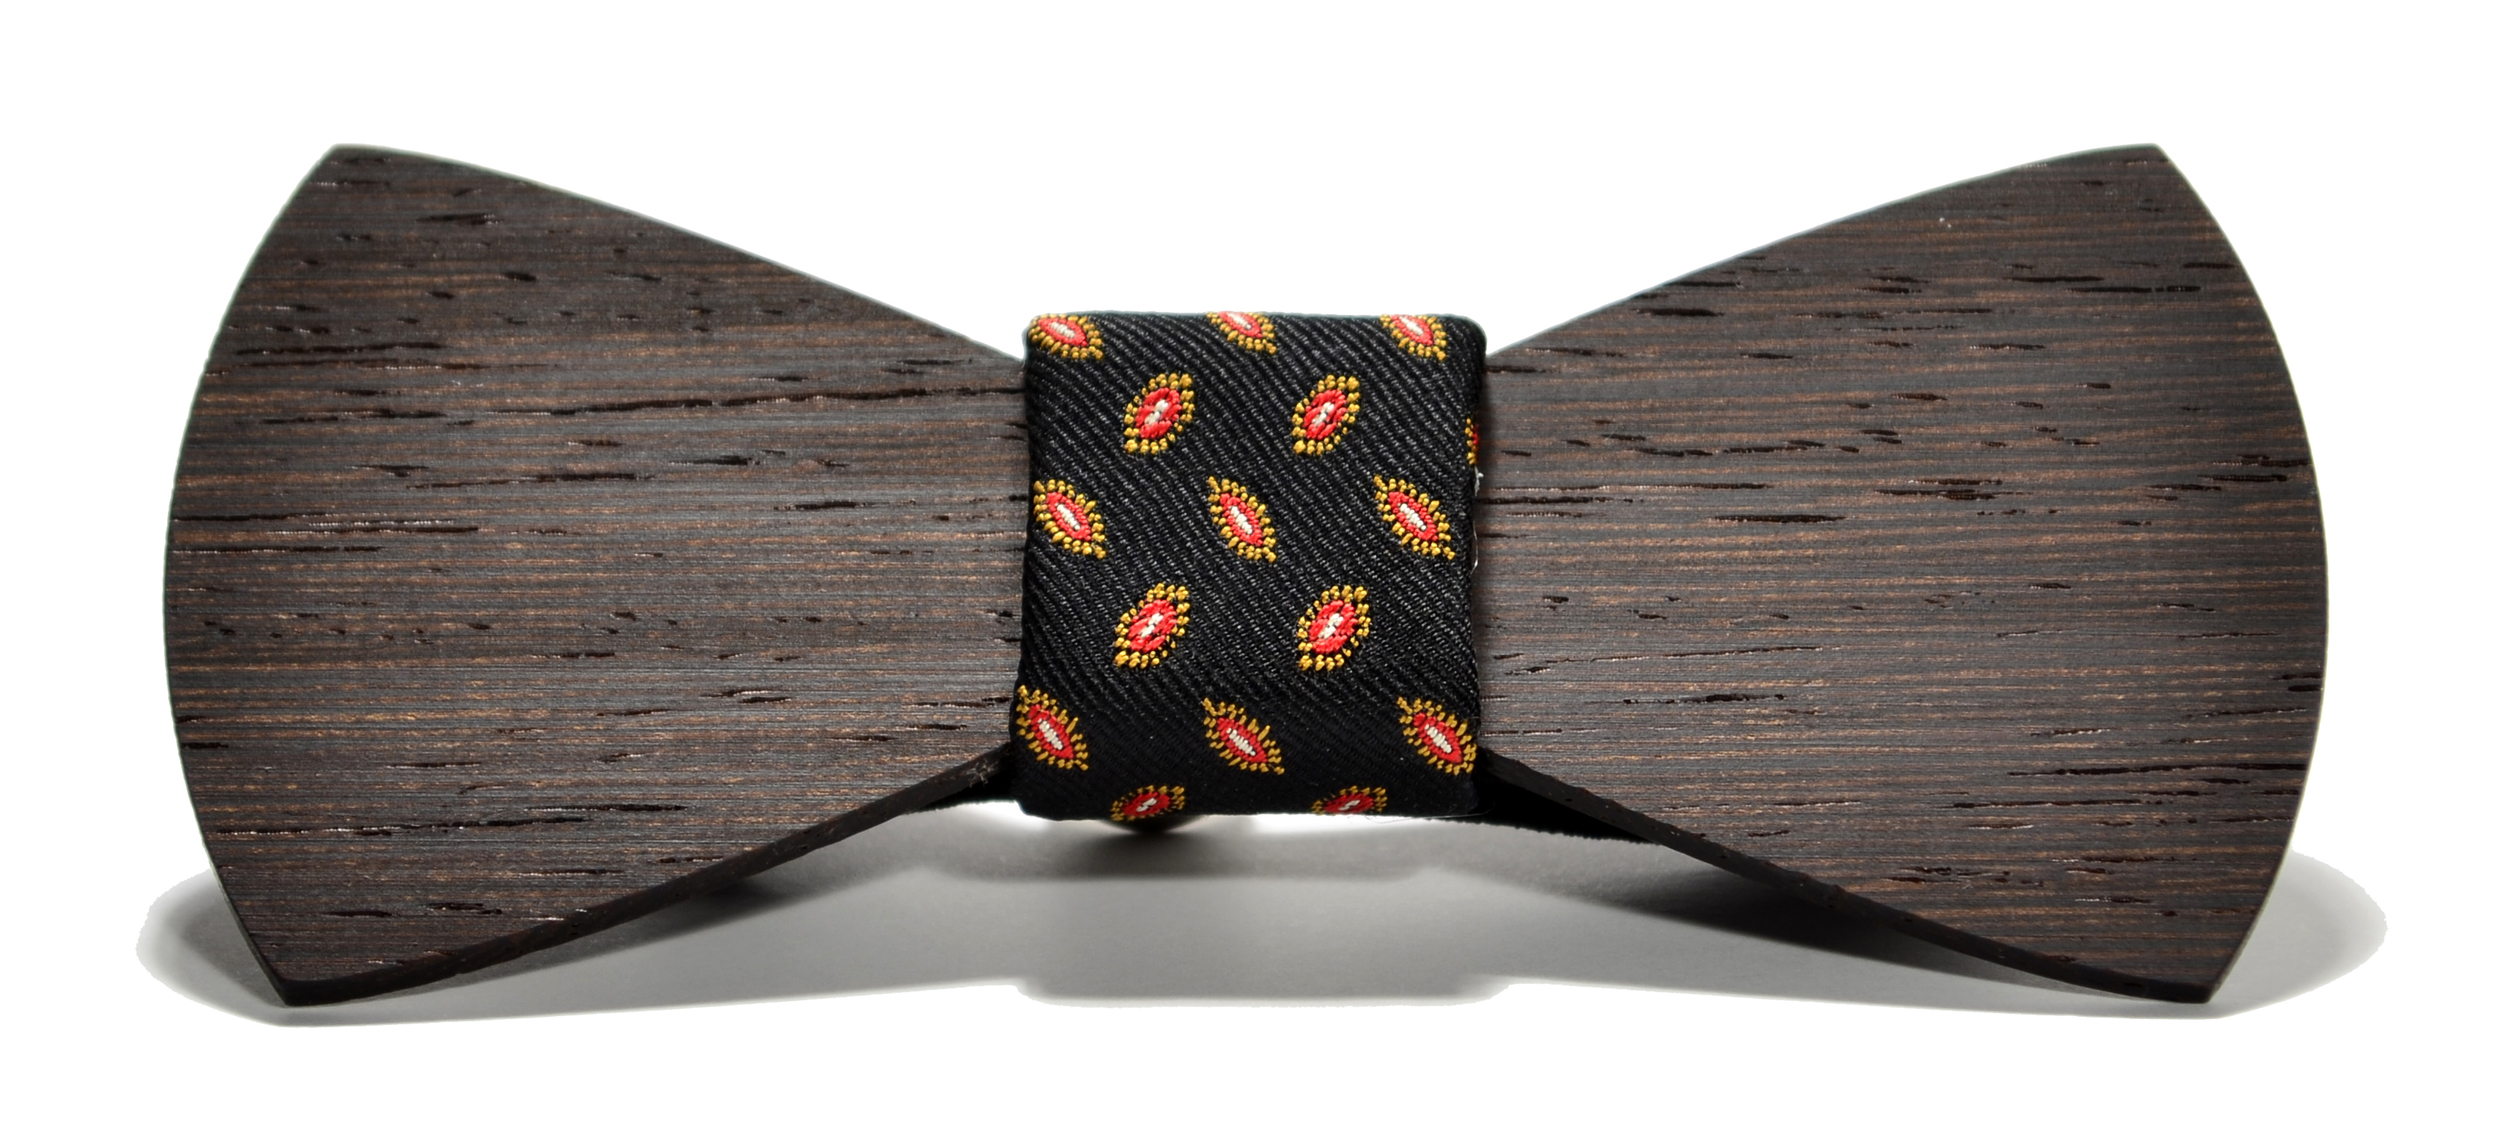 The Baron Wenge Traditional Silk Wooden Bow Tie